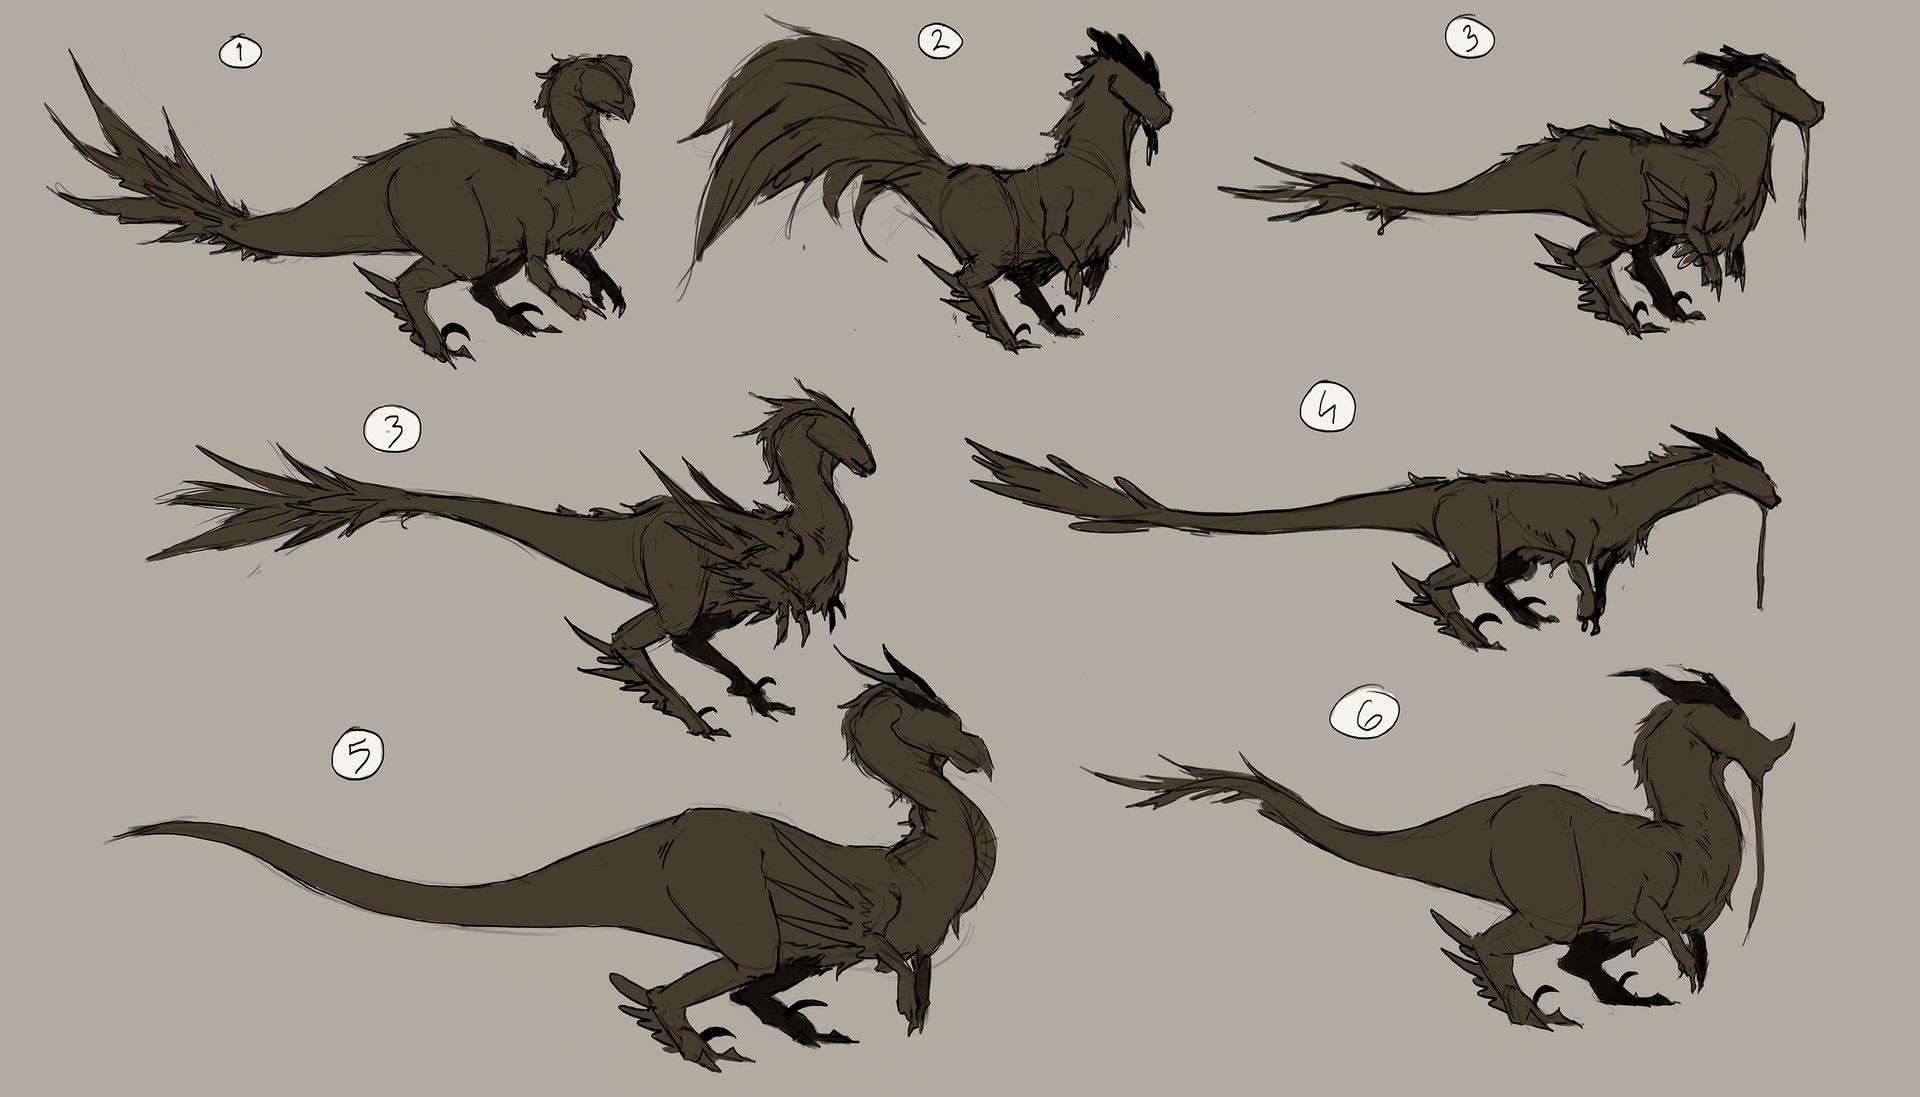 First thumbnails of the raptor. I wanted to experiment with some different silhouettes for the raptor and ended up with using nr 3. Compared to the others nr 3 felt like the most well fitted to ride on both in size and build.